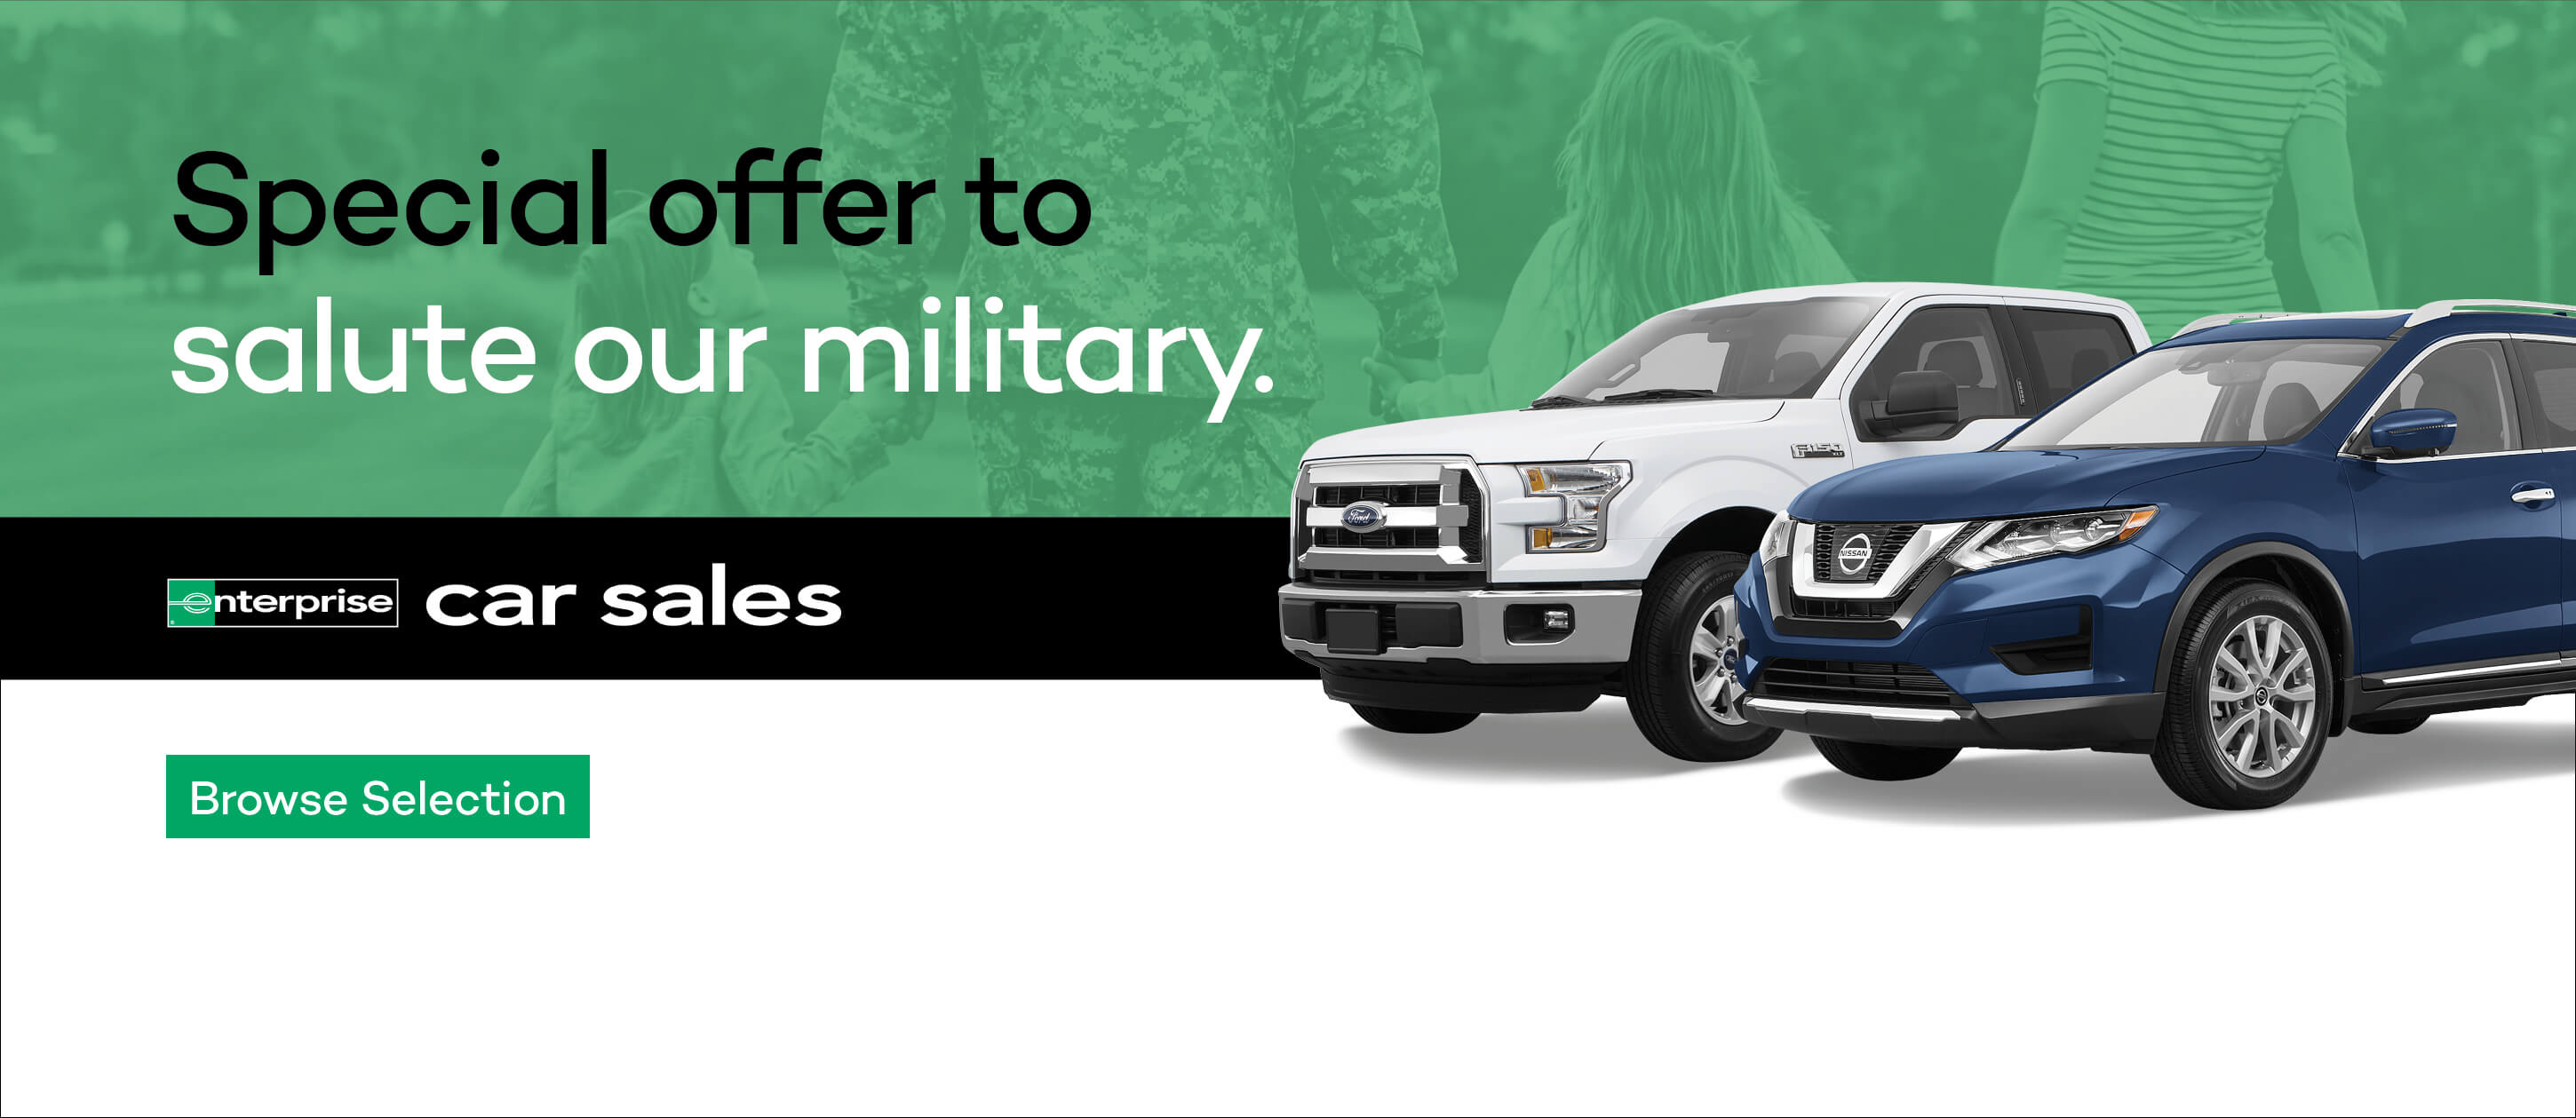 Enterprise Car Sales - special military offer